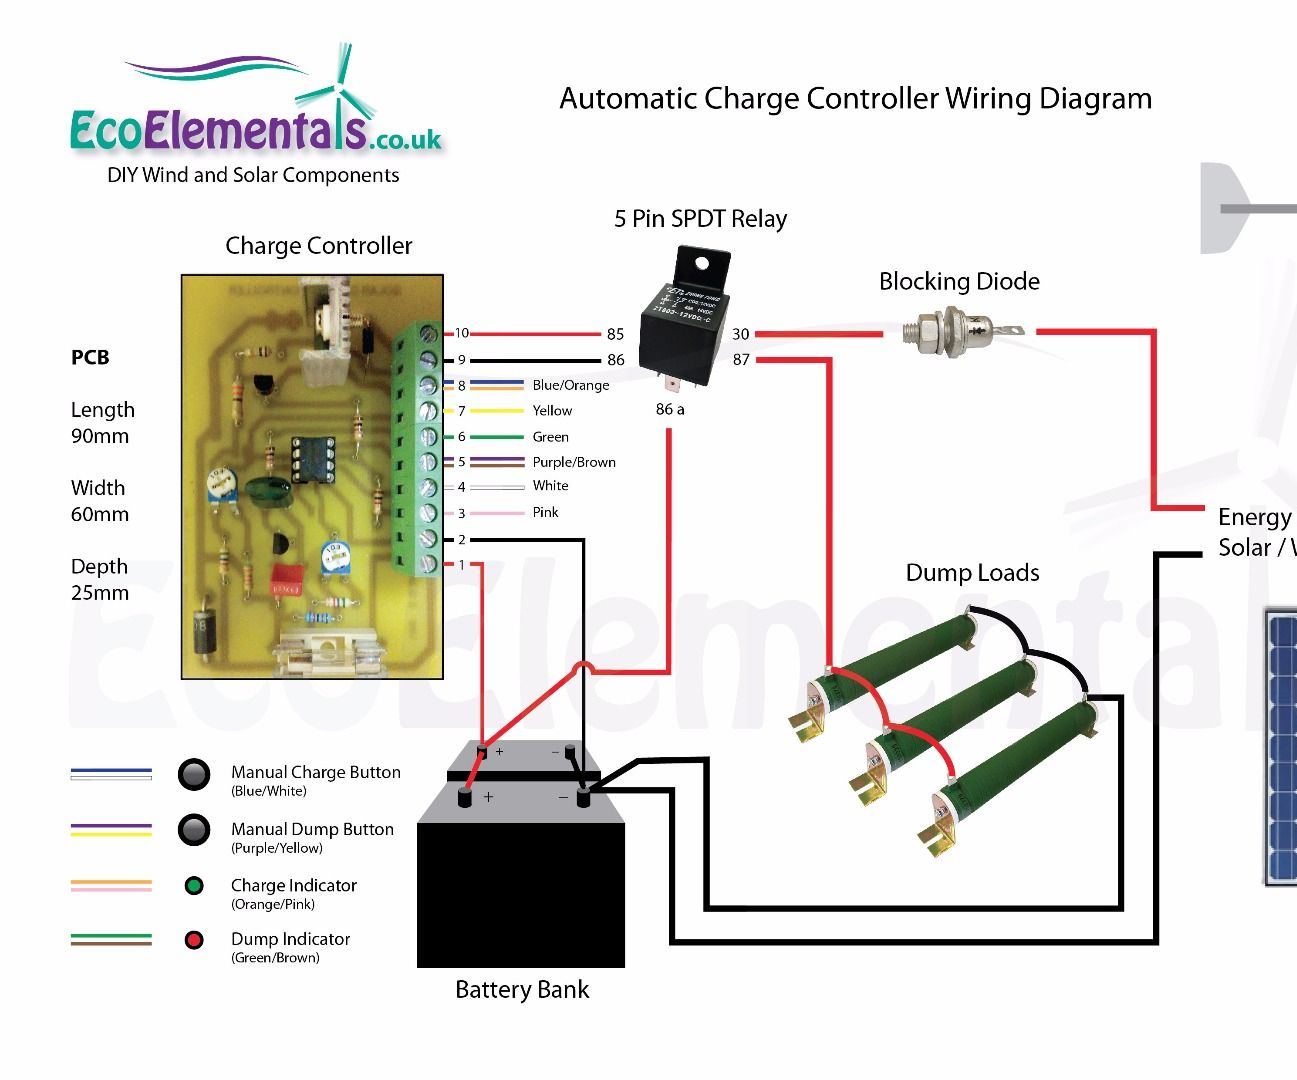 small resolution of charge controller wiring diagram for diy wind turbine or solar panels victron solar charge controller wiring diagram solar controller wiring diagram